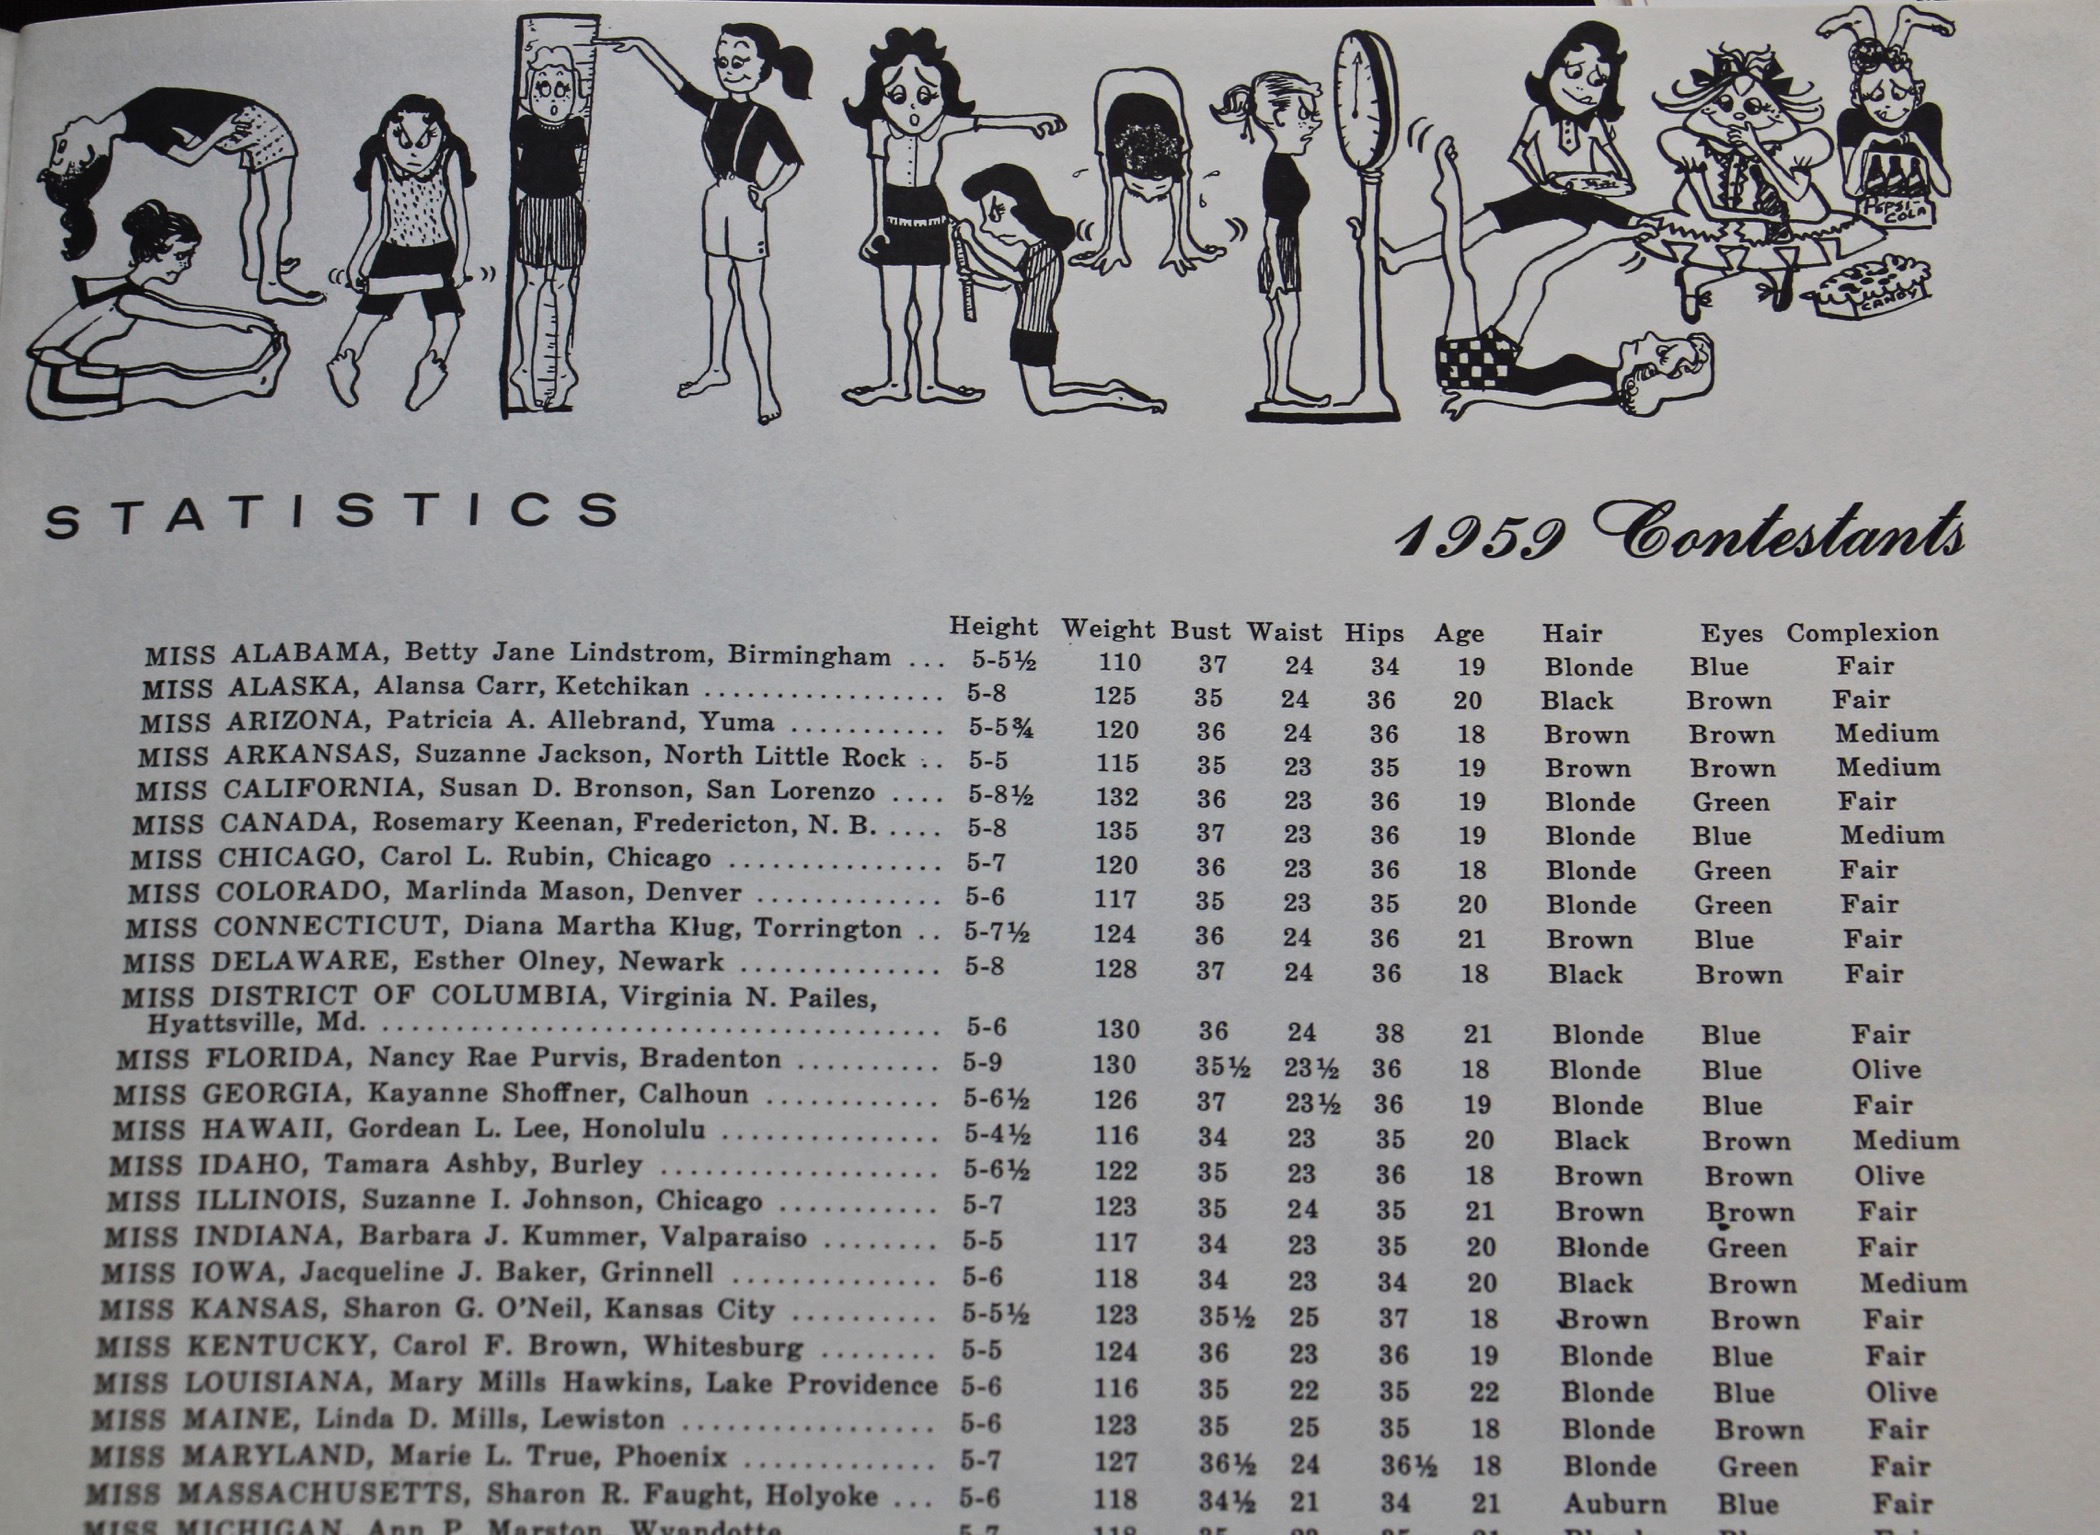 A program from the 1959 iteration of Miss America lists the statistics for each contestant.